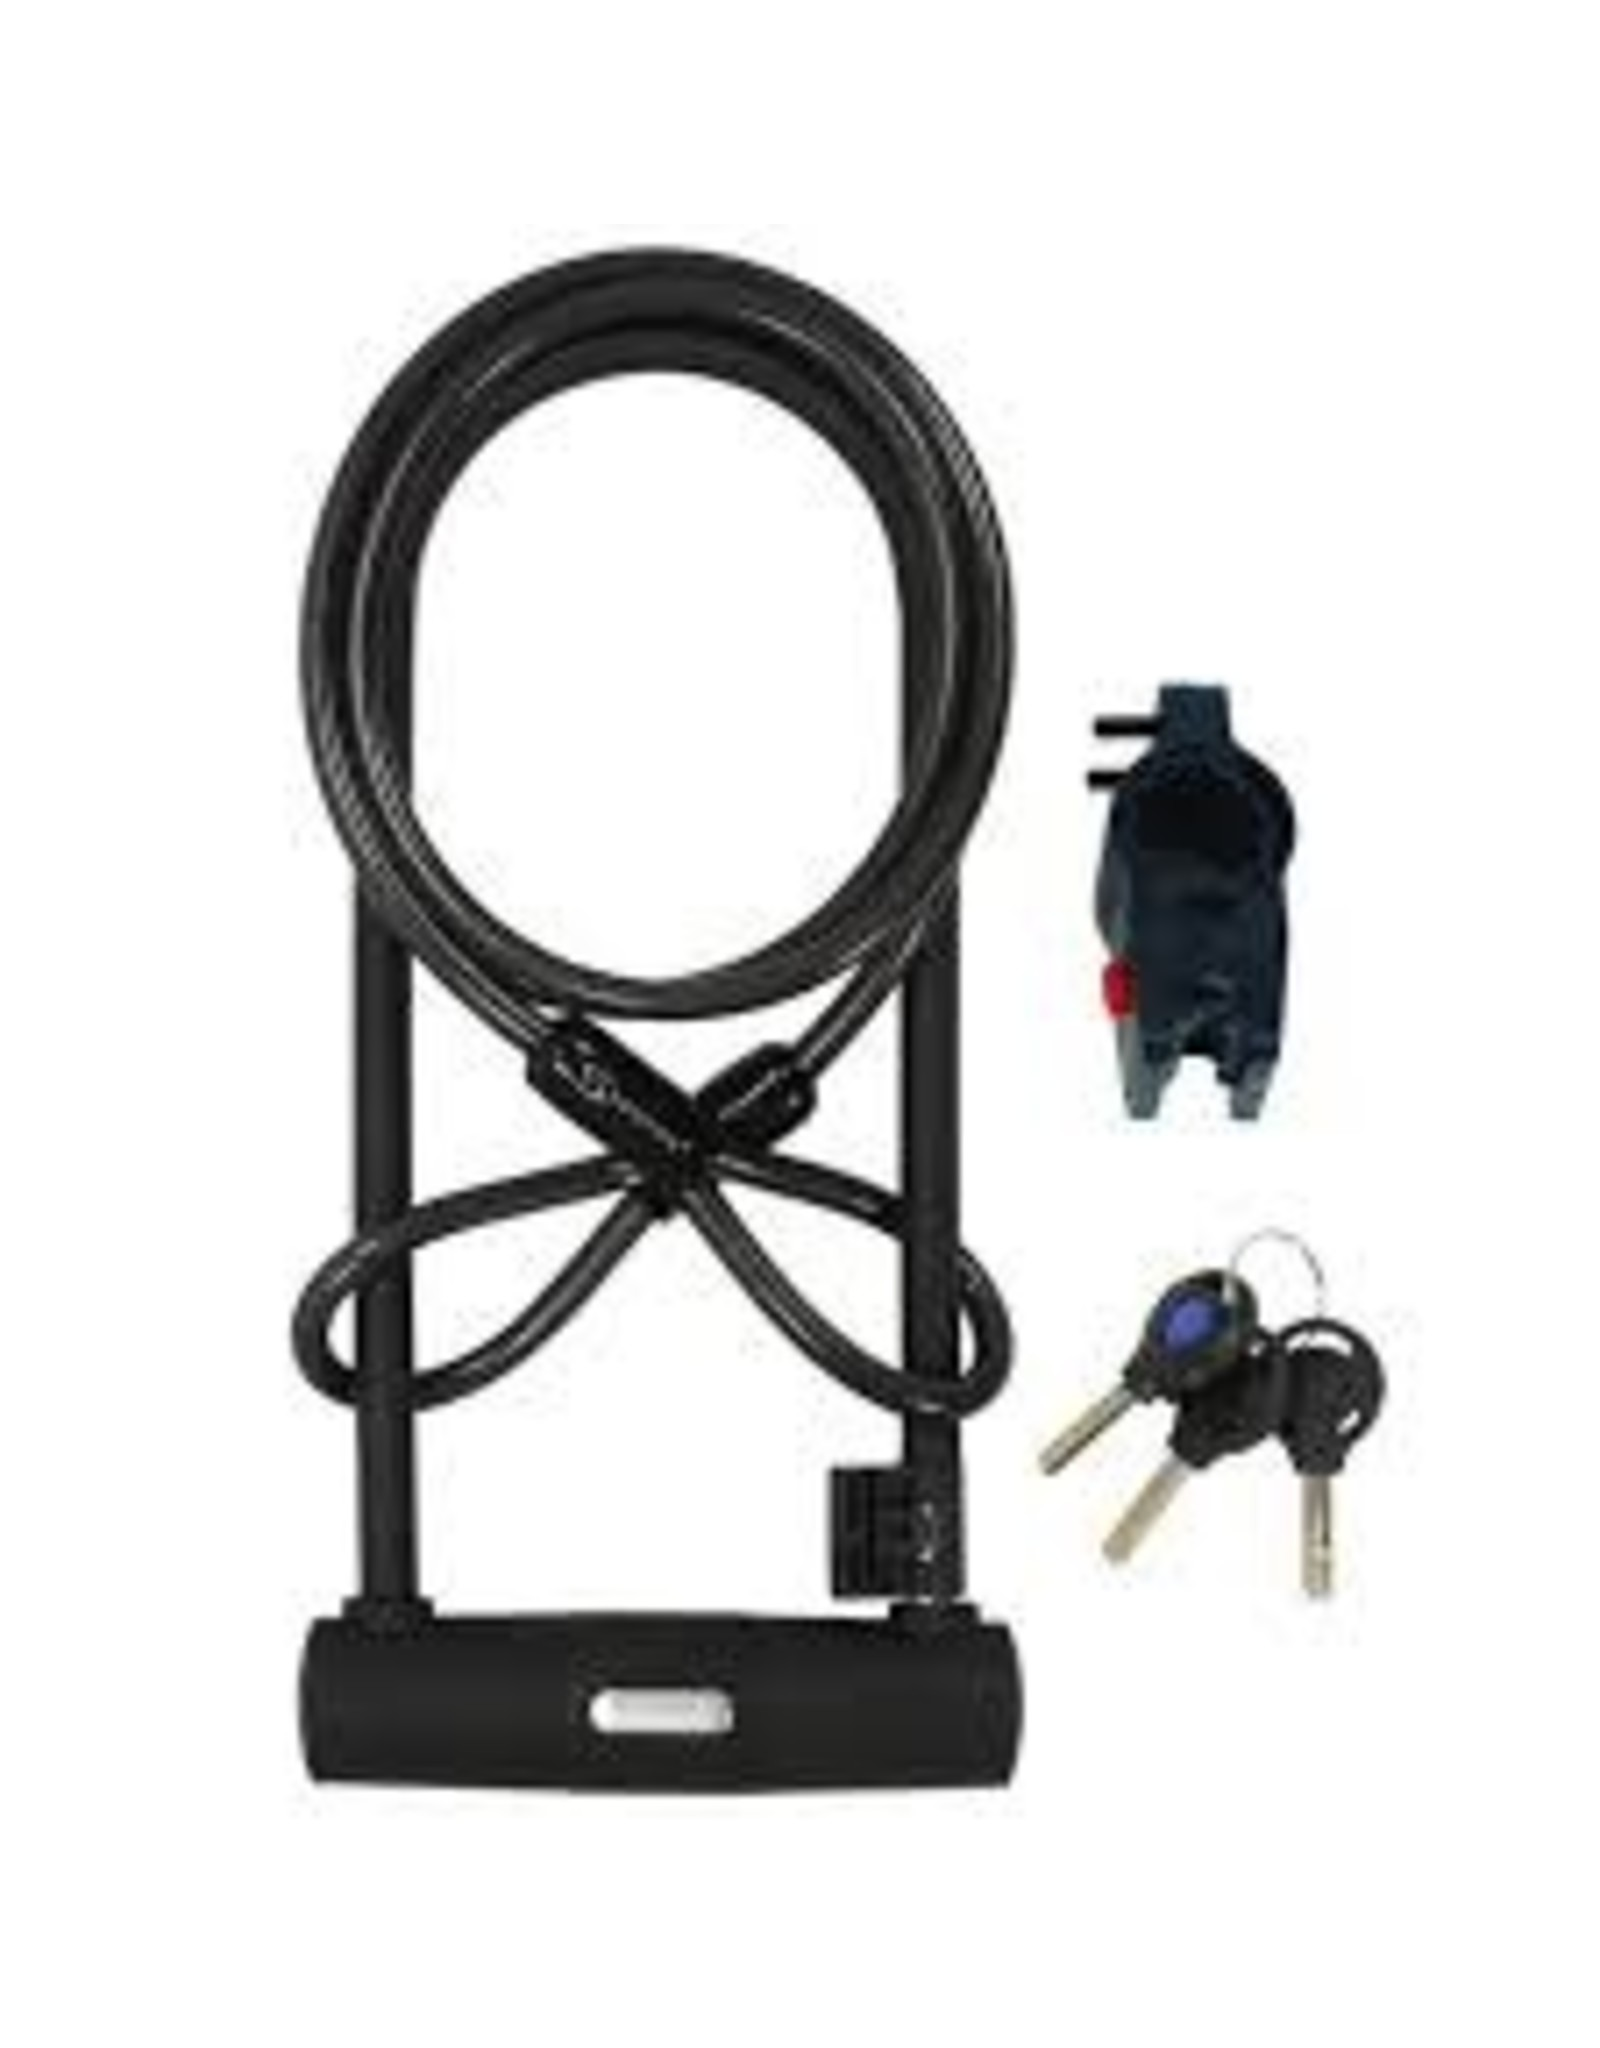 Lock Serfas U-Lock W/Bracket And Cable